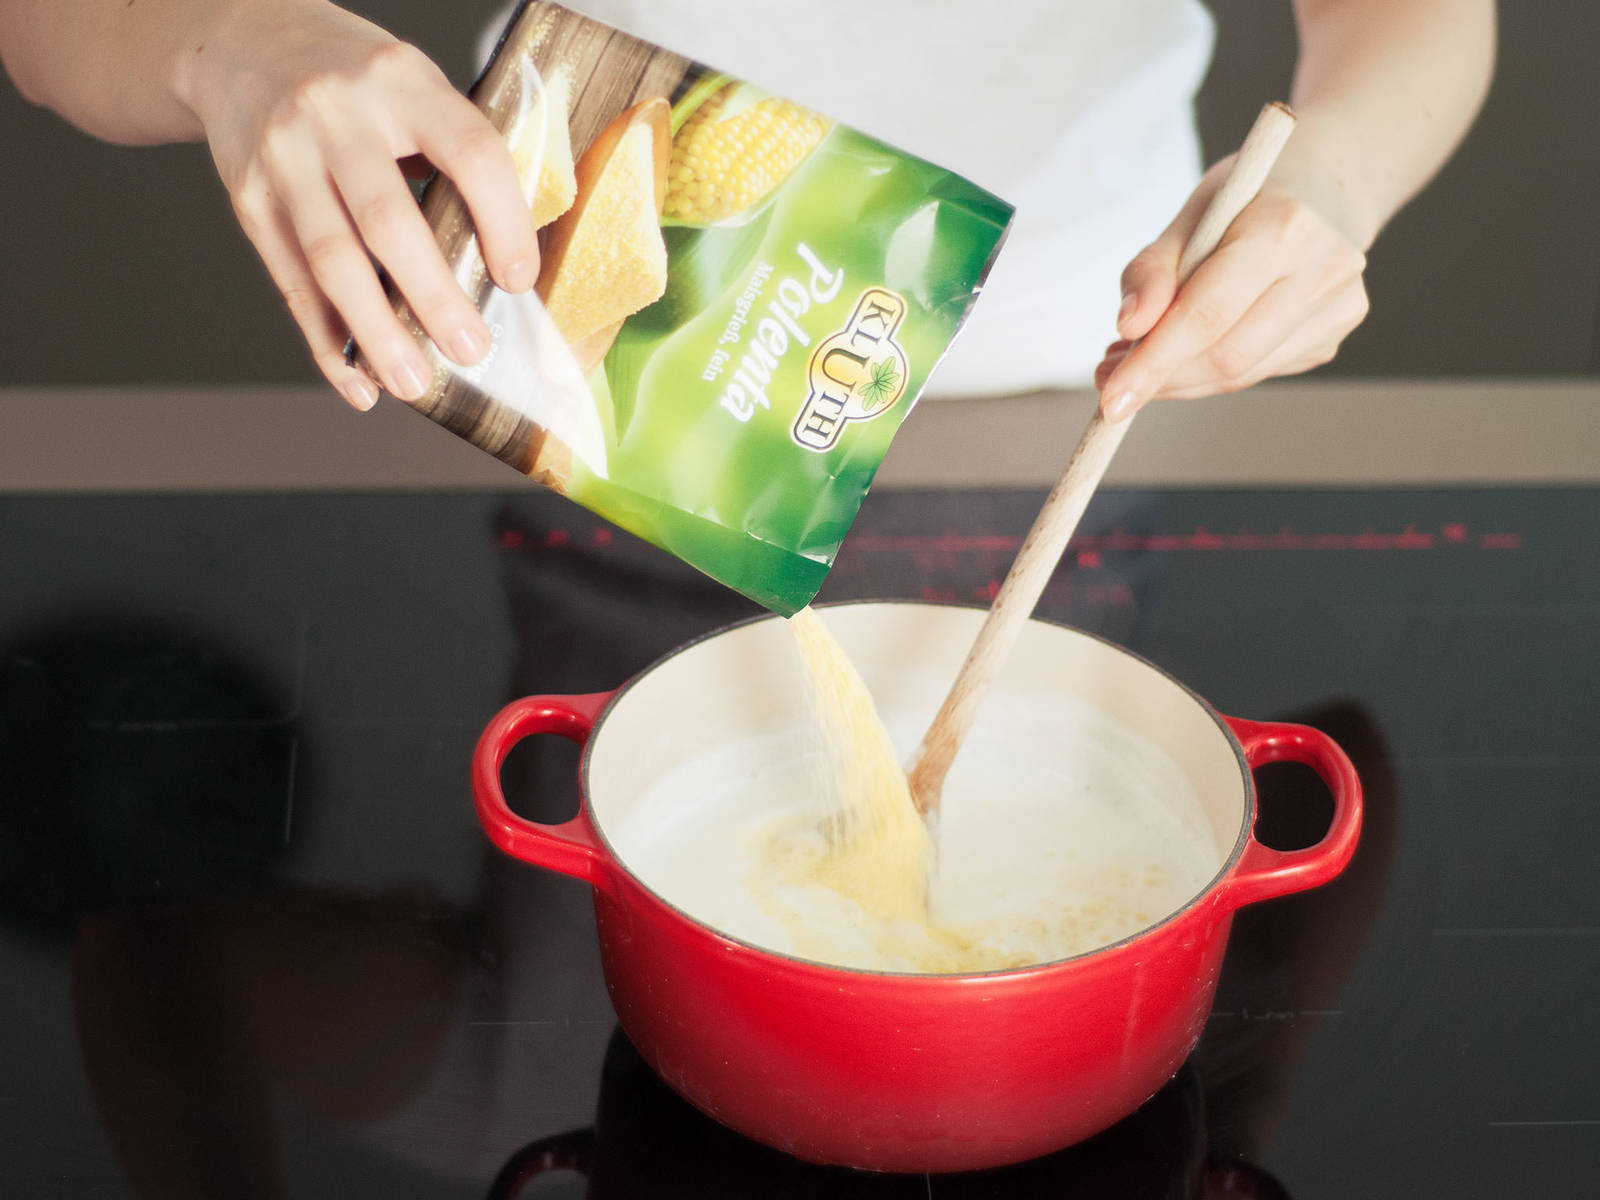 To cook polenta, bring water and milk to boil in a small saucepan; add salt.  Pour polenta into boiling mixture in a steady stream, whisking constantly. Turn down heat to low. Continue to whisk until polenta thickens, approx. 3 – 5 min. Remove from heat and stir in butter, cheese, and salt and black pepper to taste. Serve shrimp and tomato mixture over a bed of polenta. Garnish with fresh parsley.